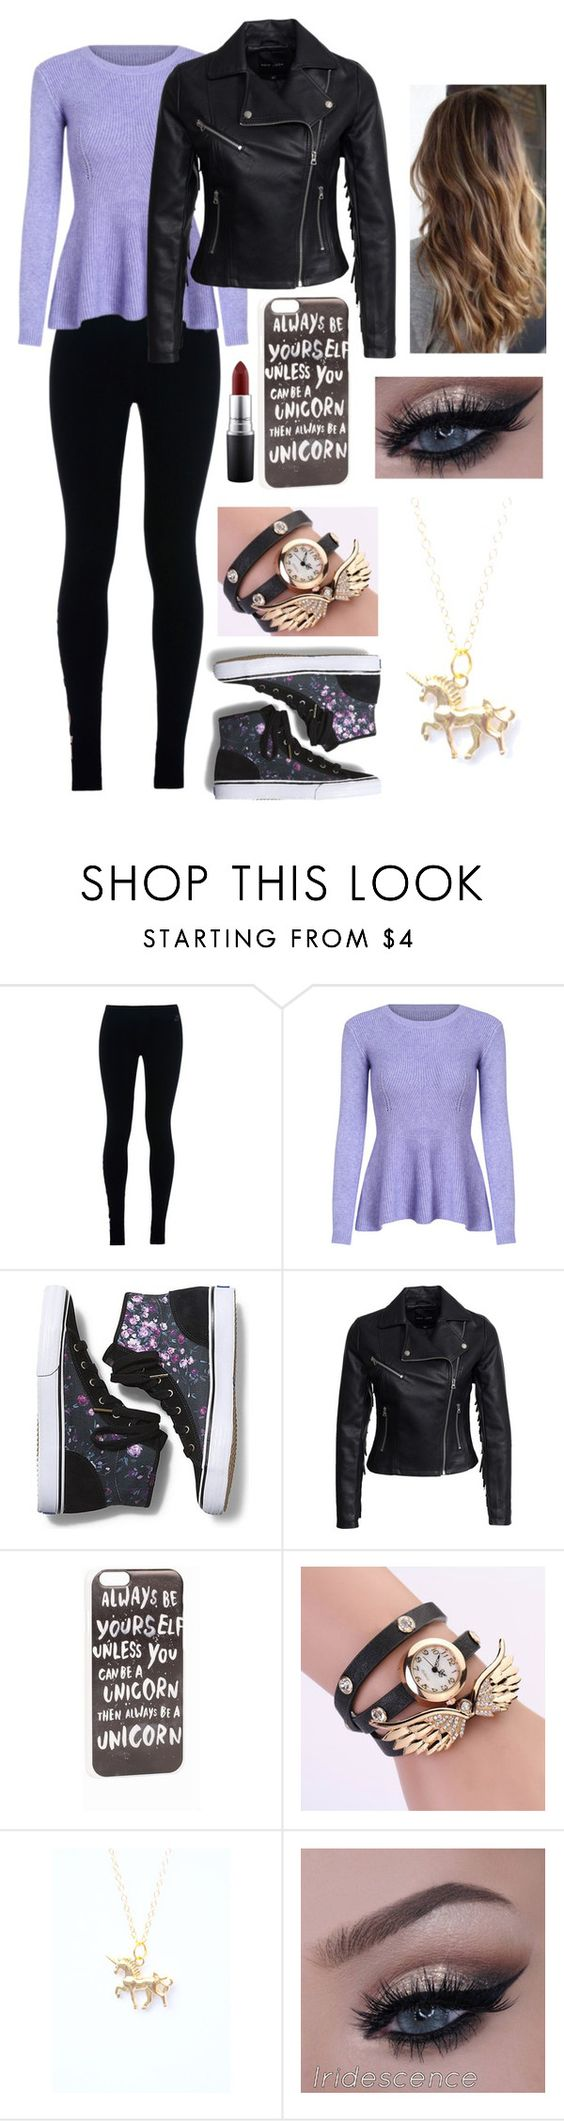 """Be yourself"" by mustachesoccer ❤ liked on Polyvore featuring NIKE, Keds, New Look, JFR and MAC Cosmetics"